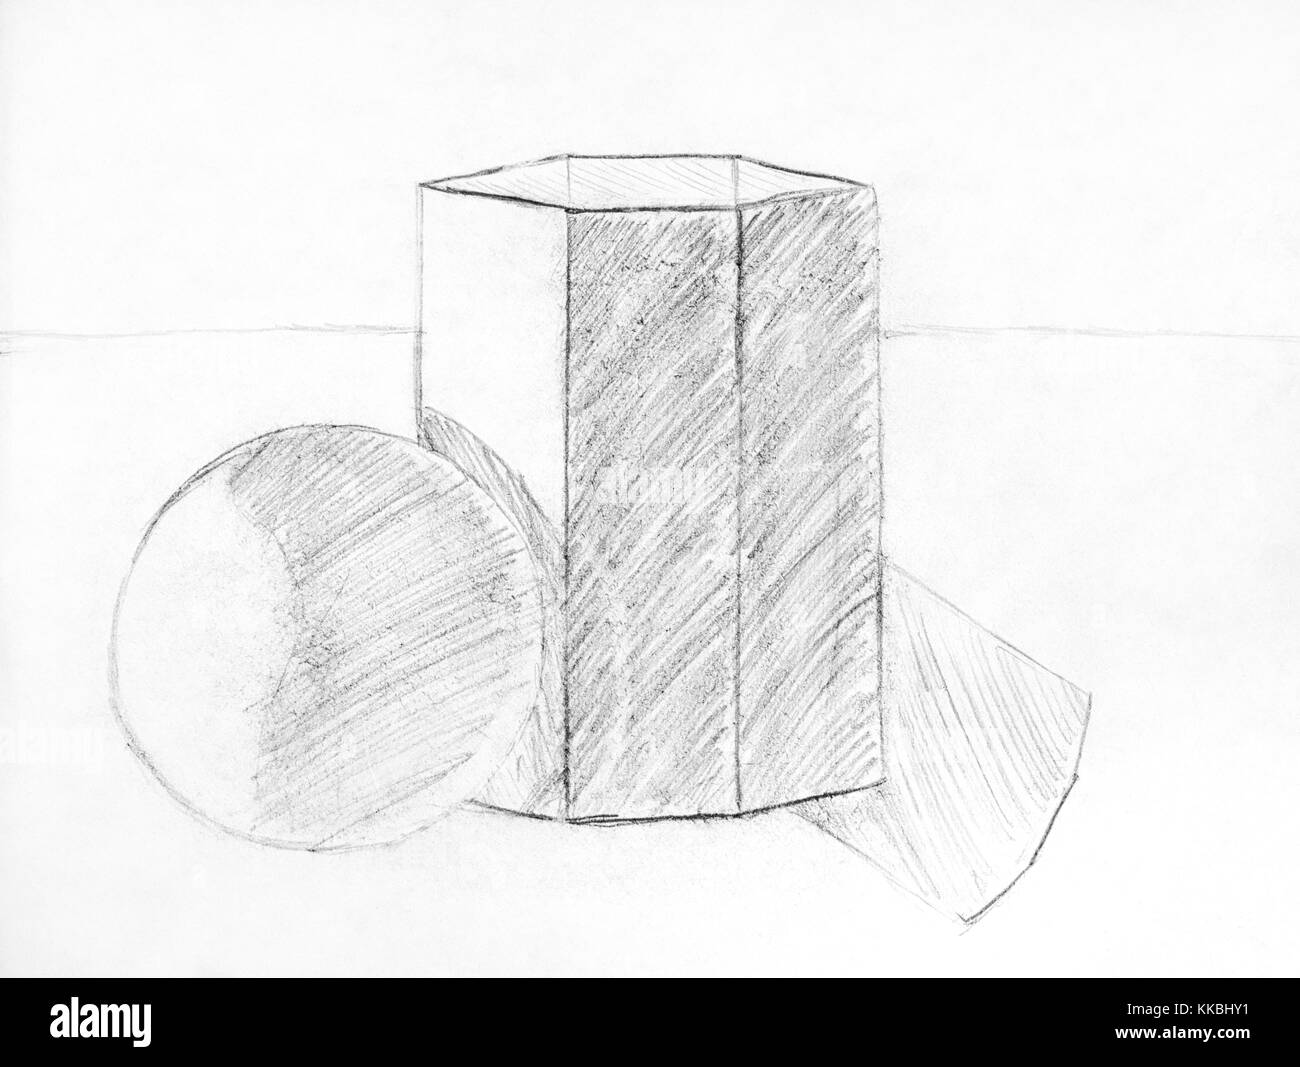 Child pencil drawing of geometric figures- sphere and hexahedron. Close-up. - Stock Image